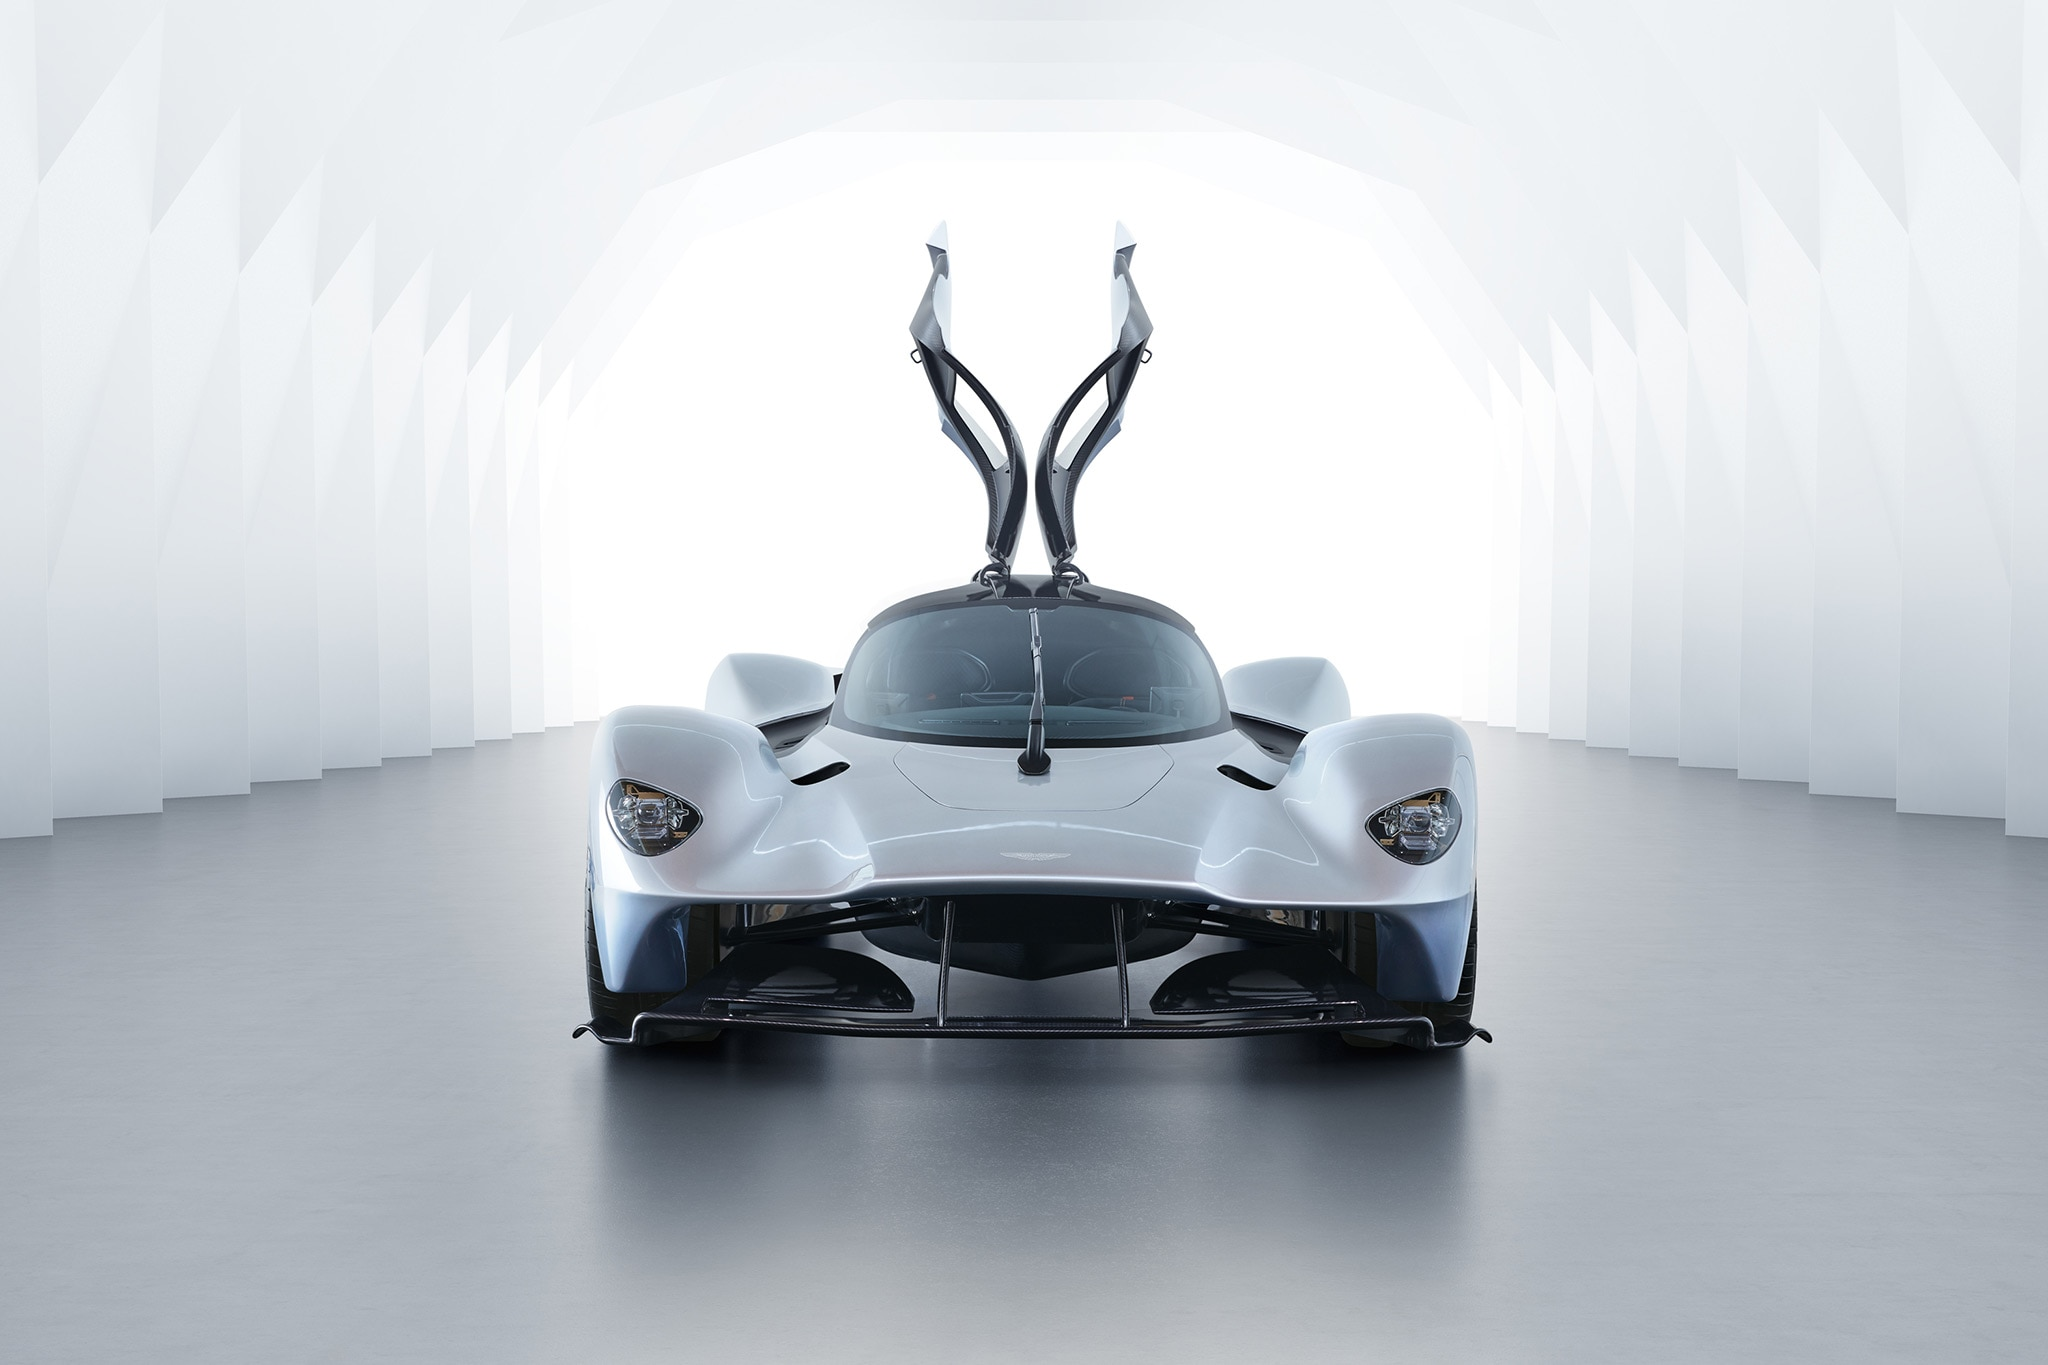 Aston Martin Valkyrie Interior Revealed!